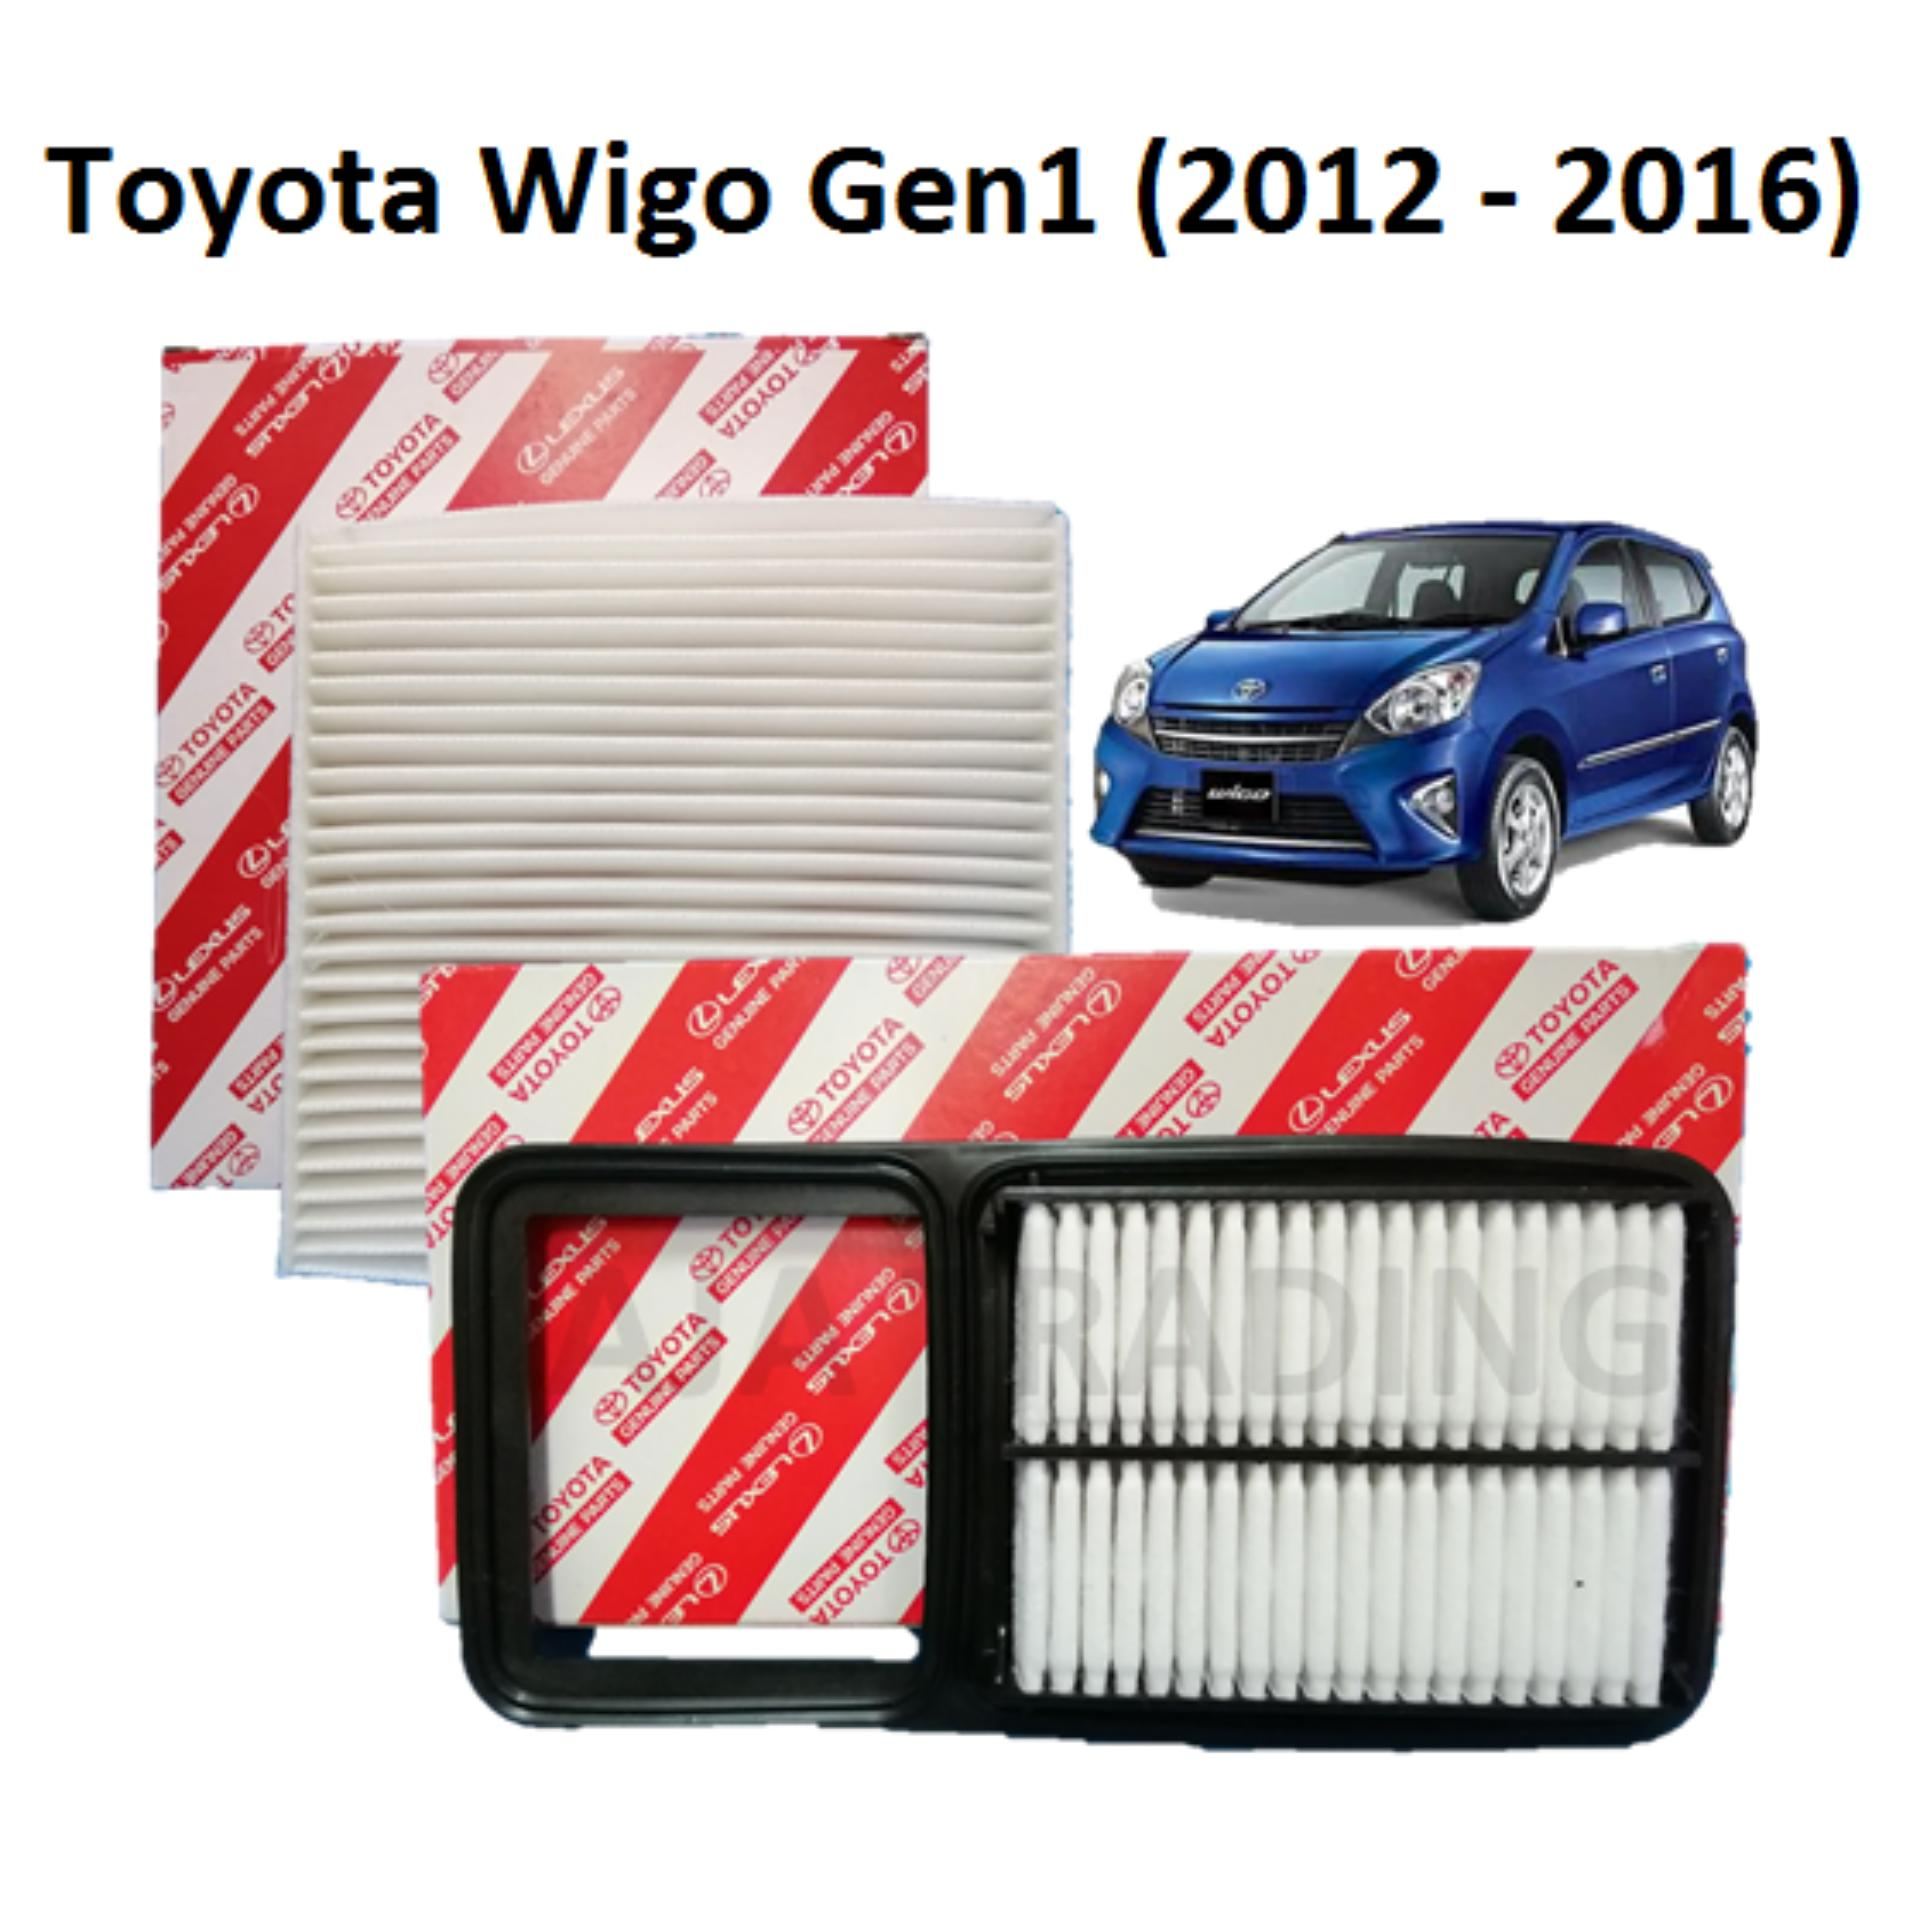 Car Parts Replacements For Sale Auto Spares Online Corlor 20005 Toyota Fuse Box Combo Air Filter And Cabin Wigo Gen1 2012 2016